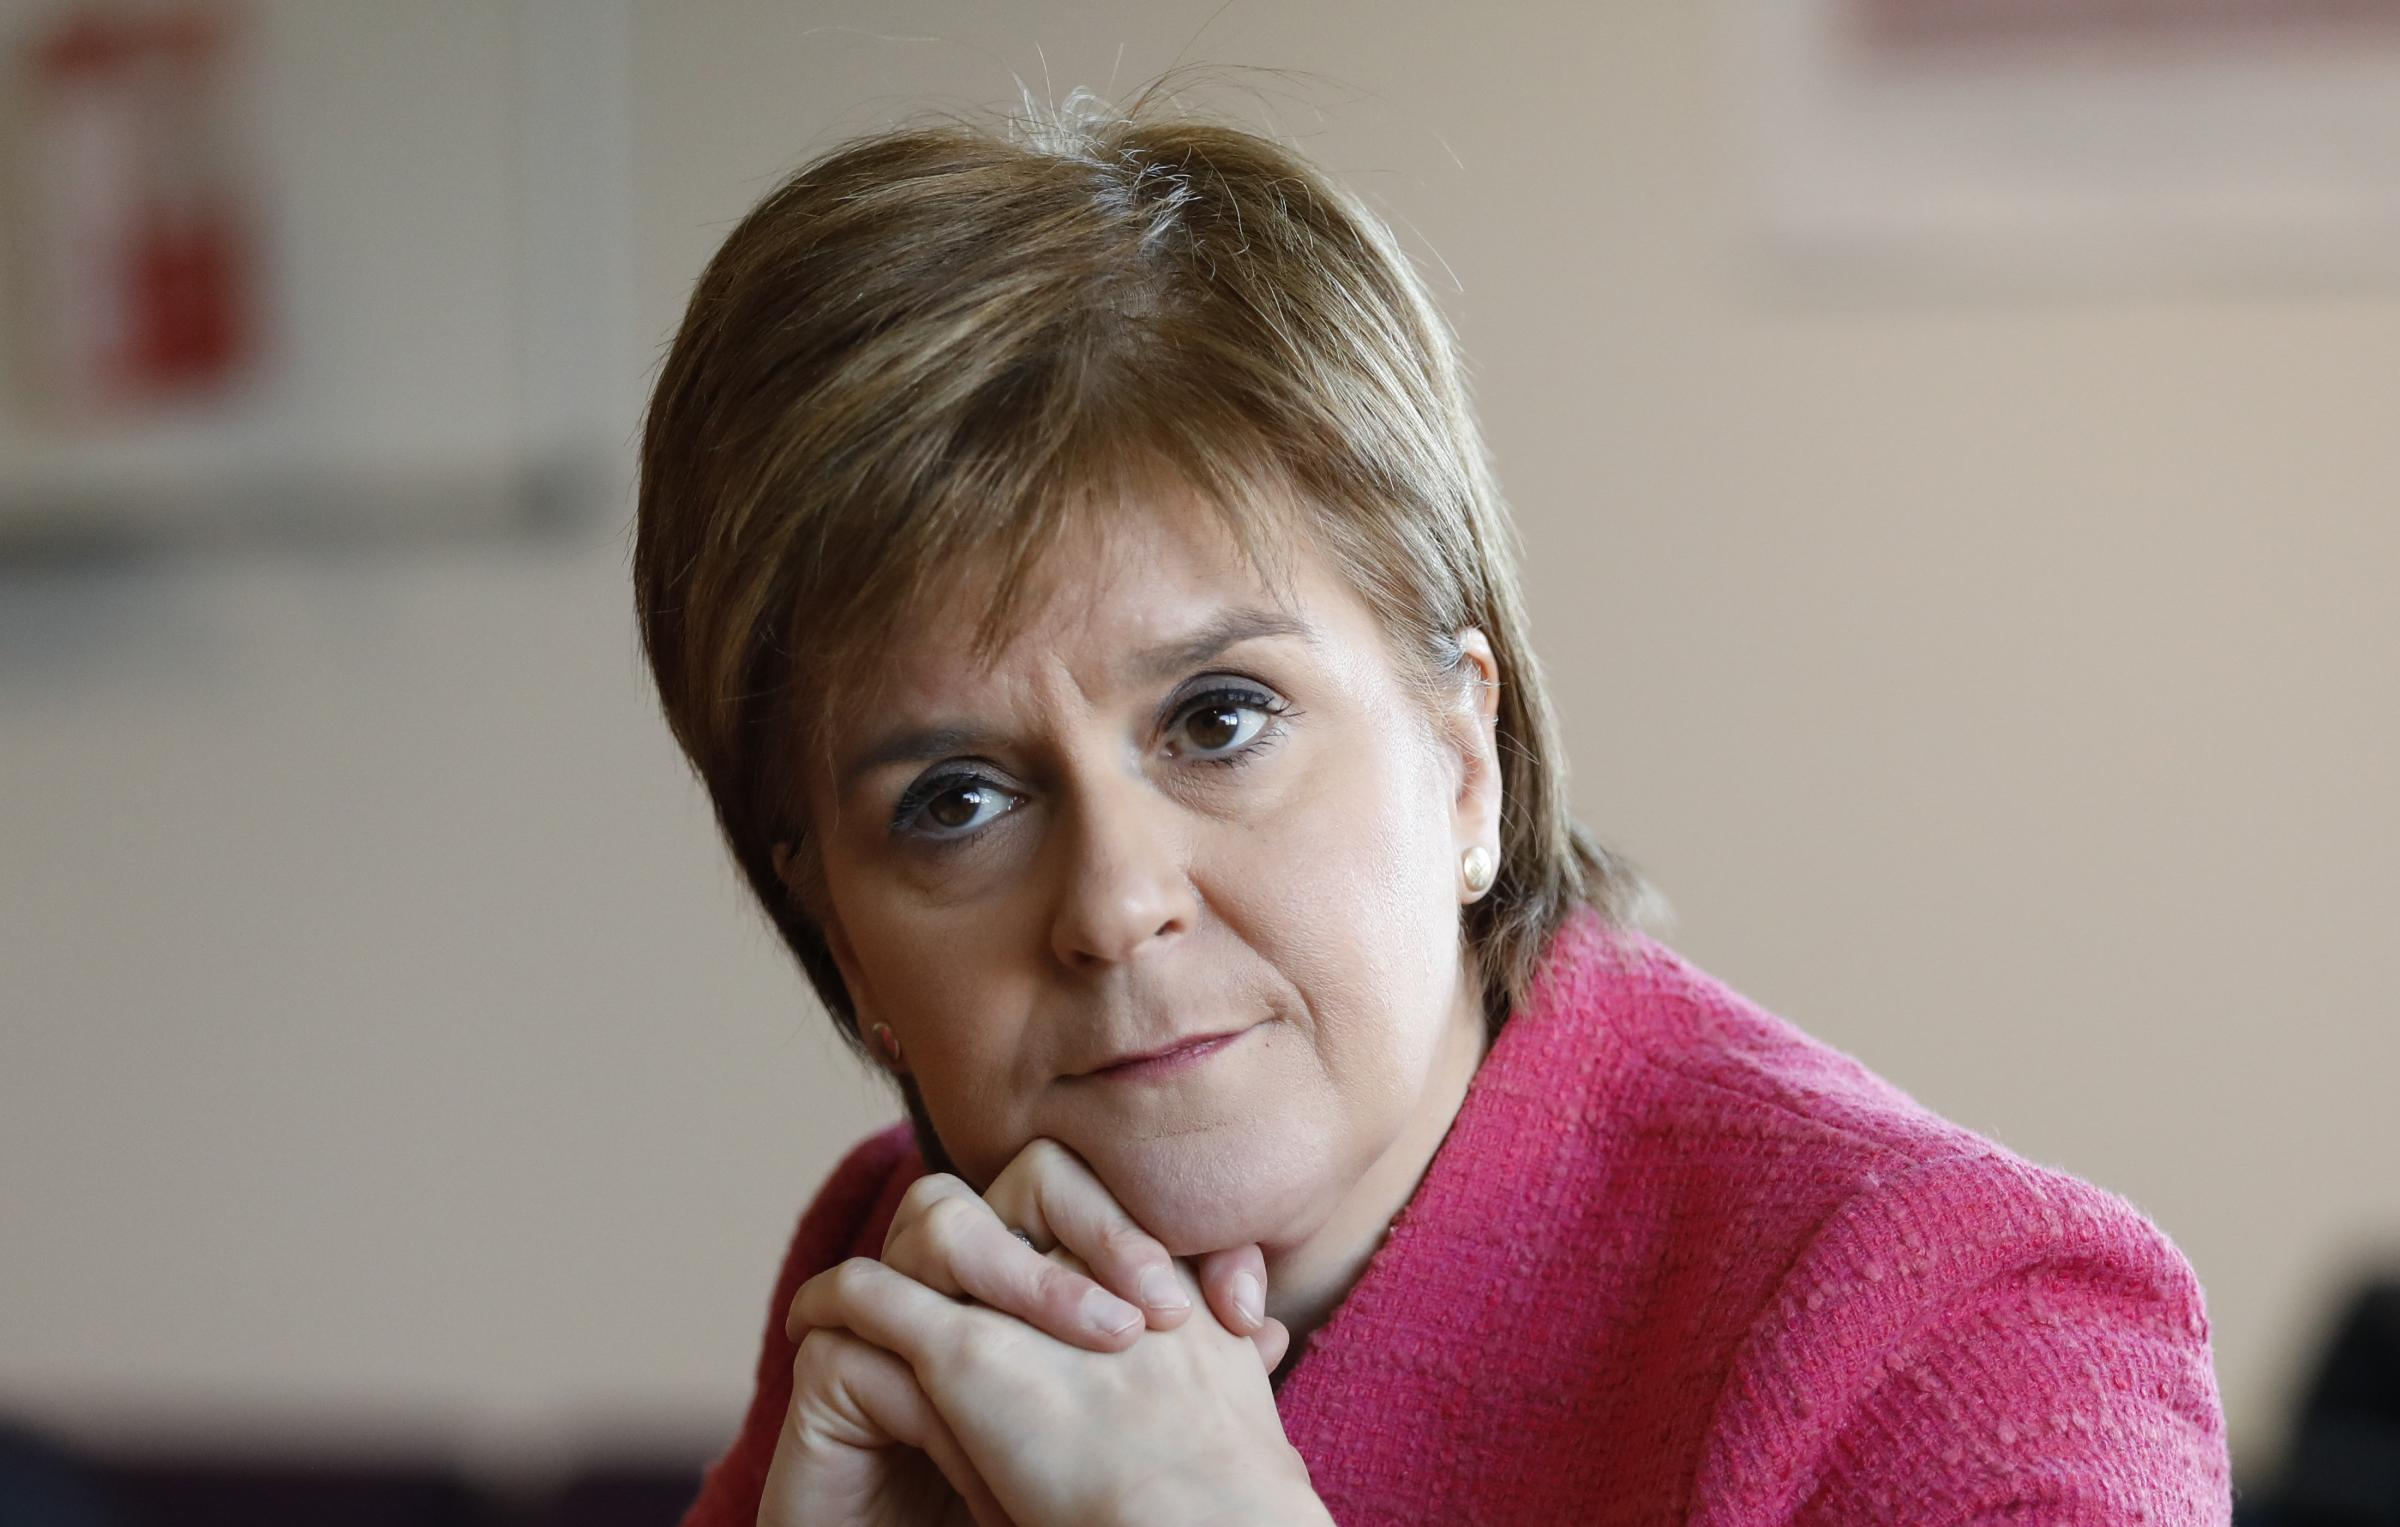 The EU's demands for a two-year transitional deal offer Nicola Sturgeon an opportunity